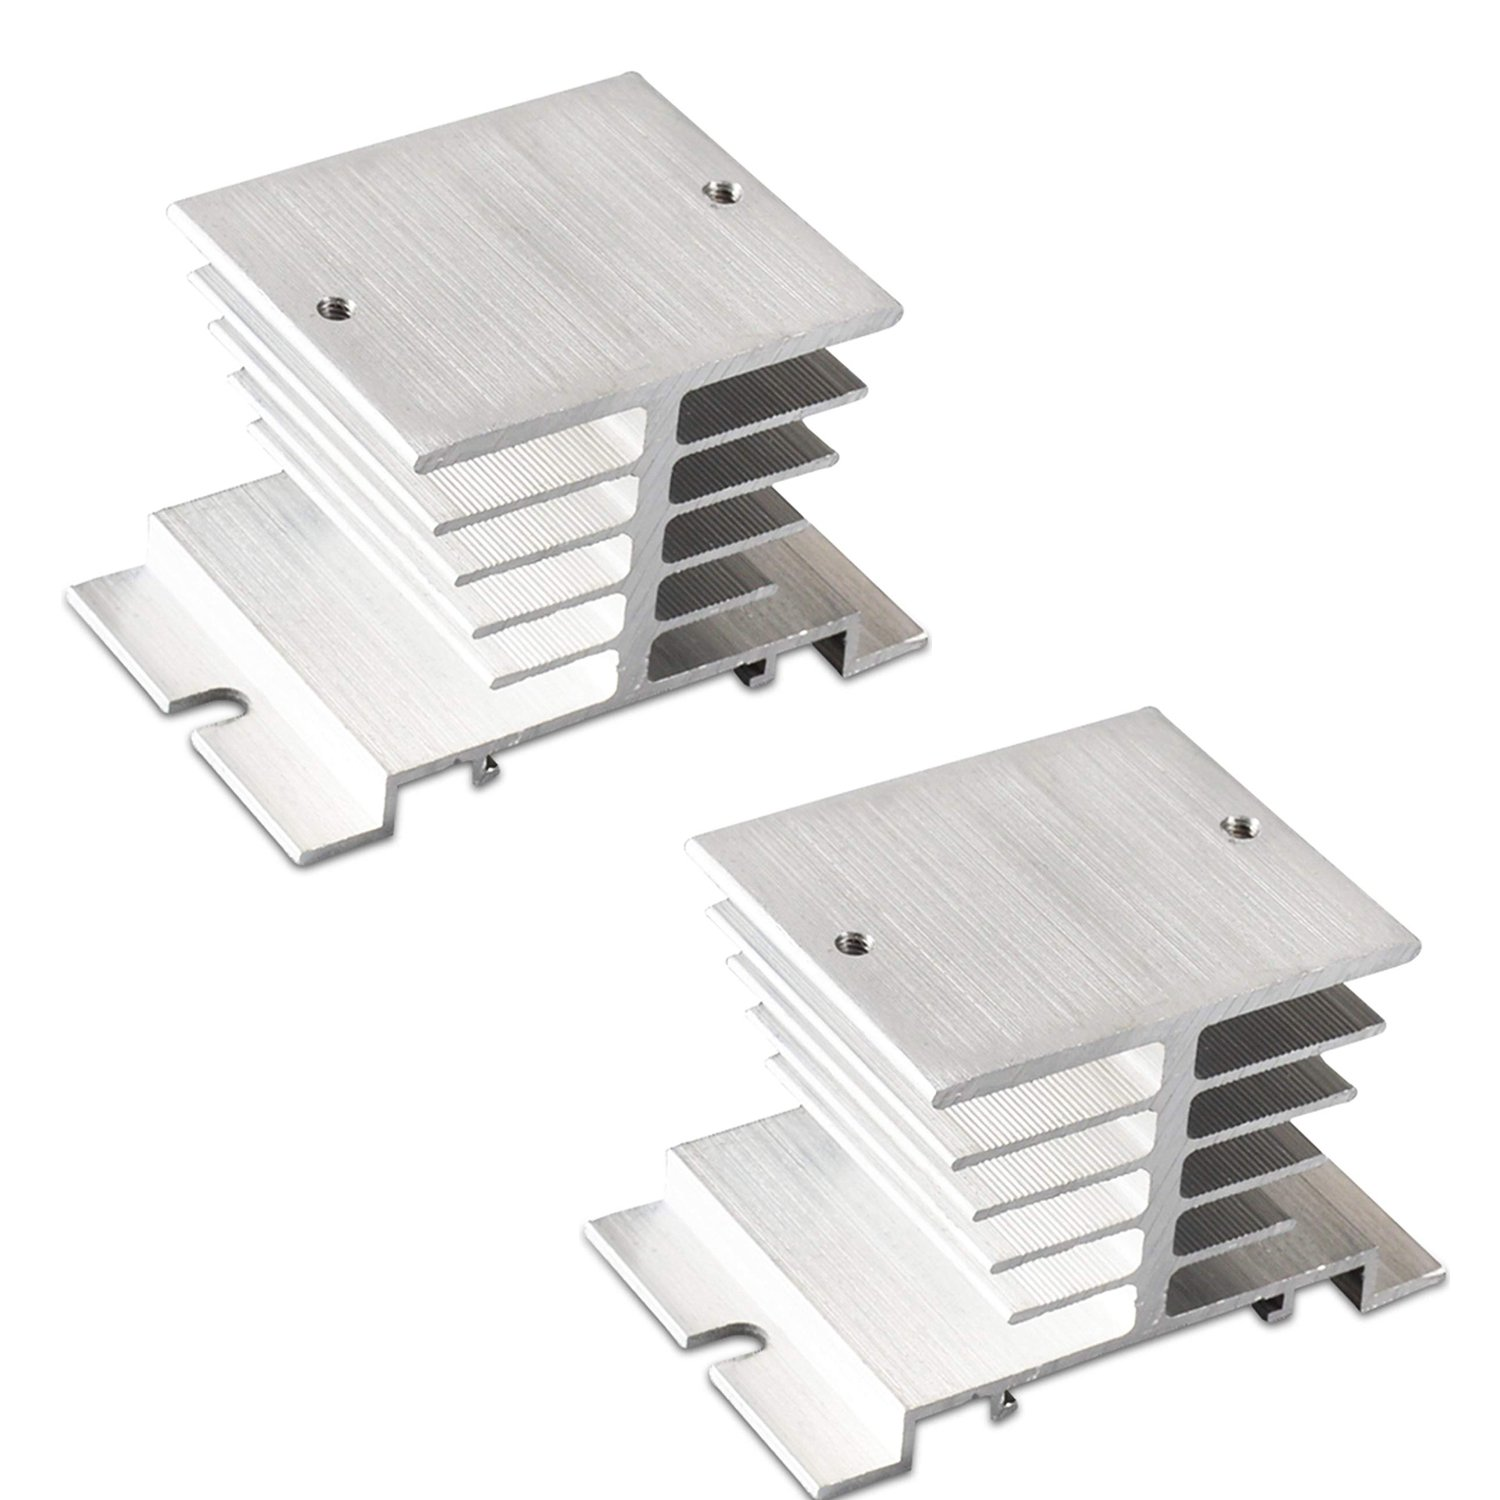 Yootop Aluminum Temperature Controller Heat Sink Heat Sink SSR Dissipation for Solid State Relay SSR Type-Pack of 2 (Silver)